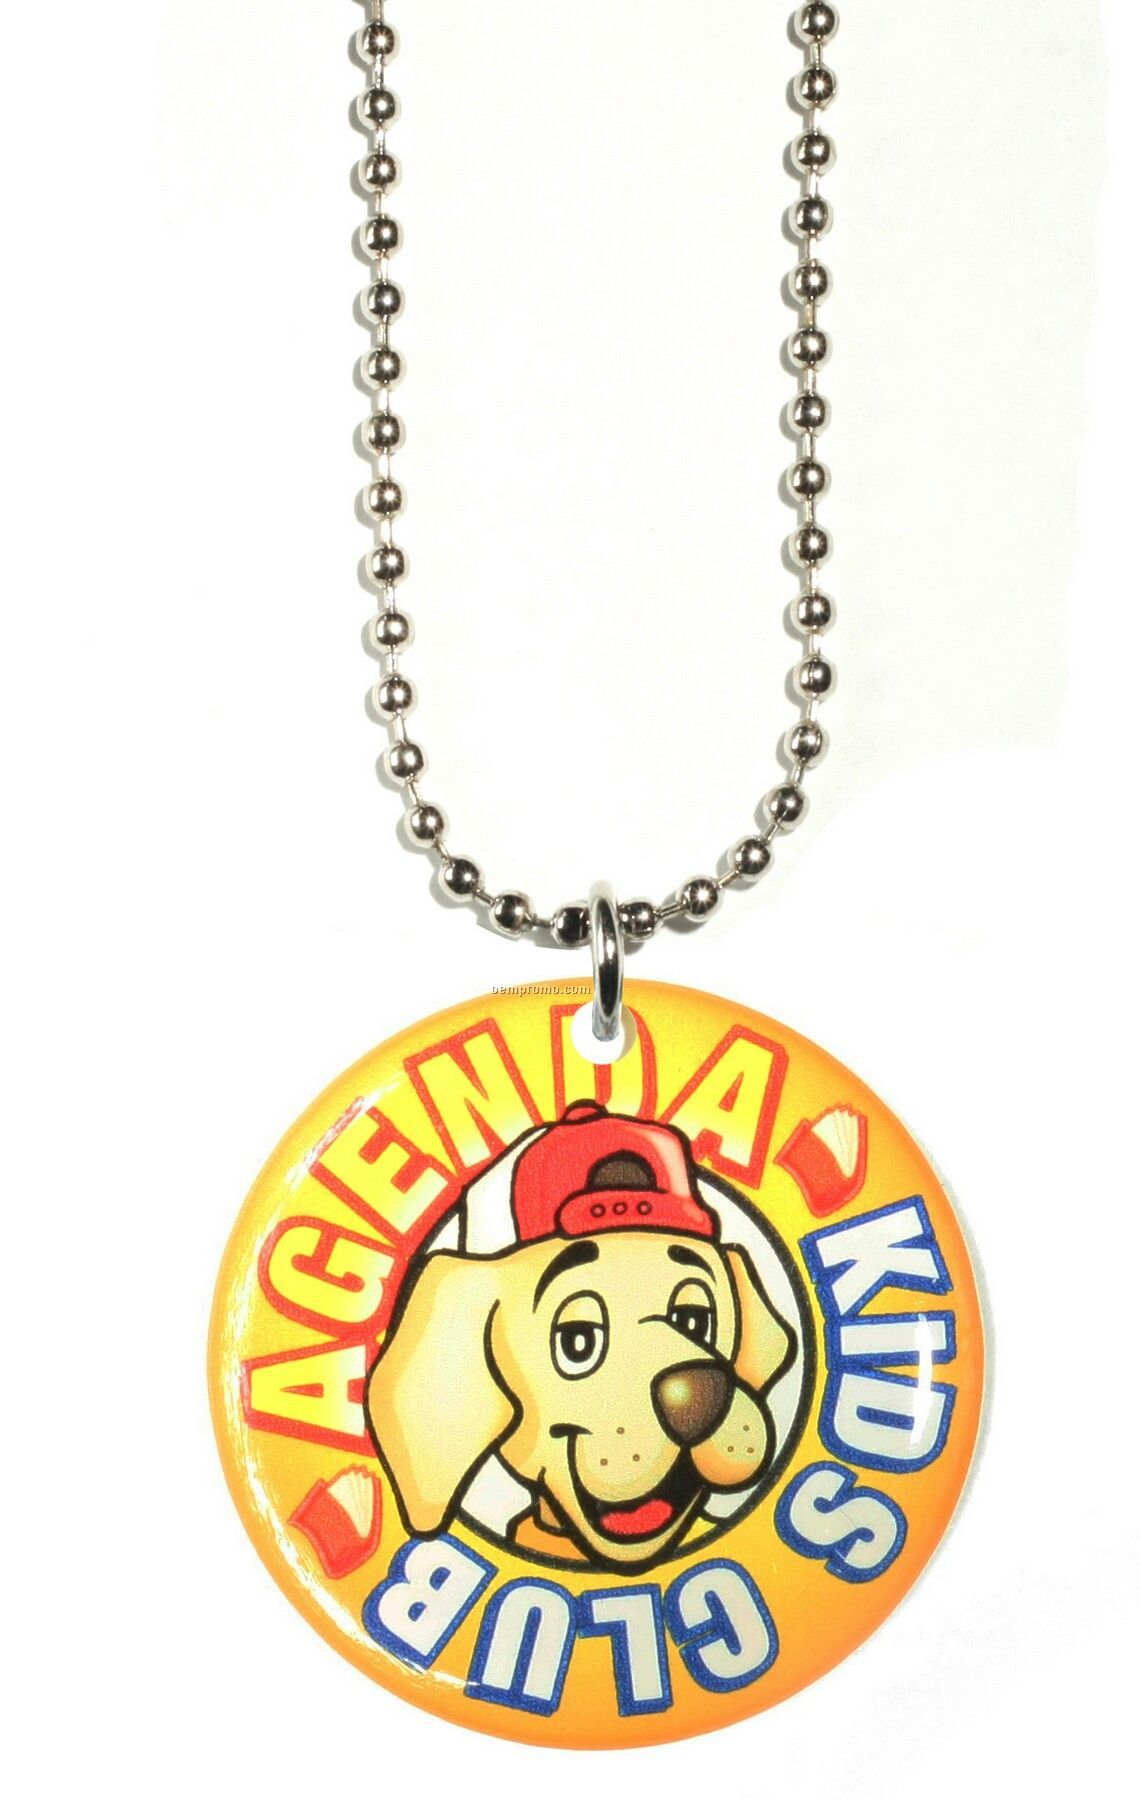 Pendants On Ball Chains (7.1 To 8 Sq. In.)